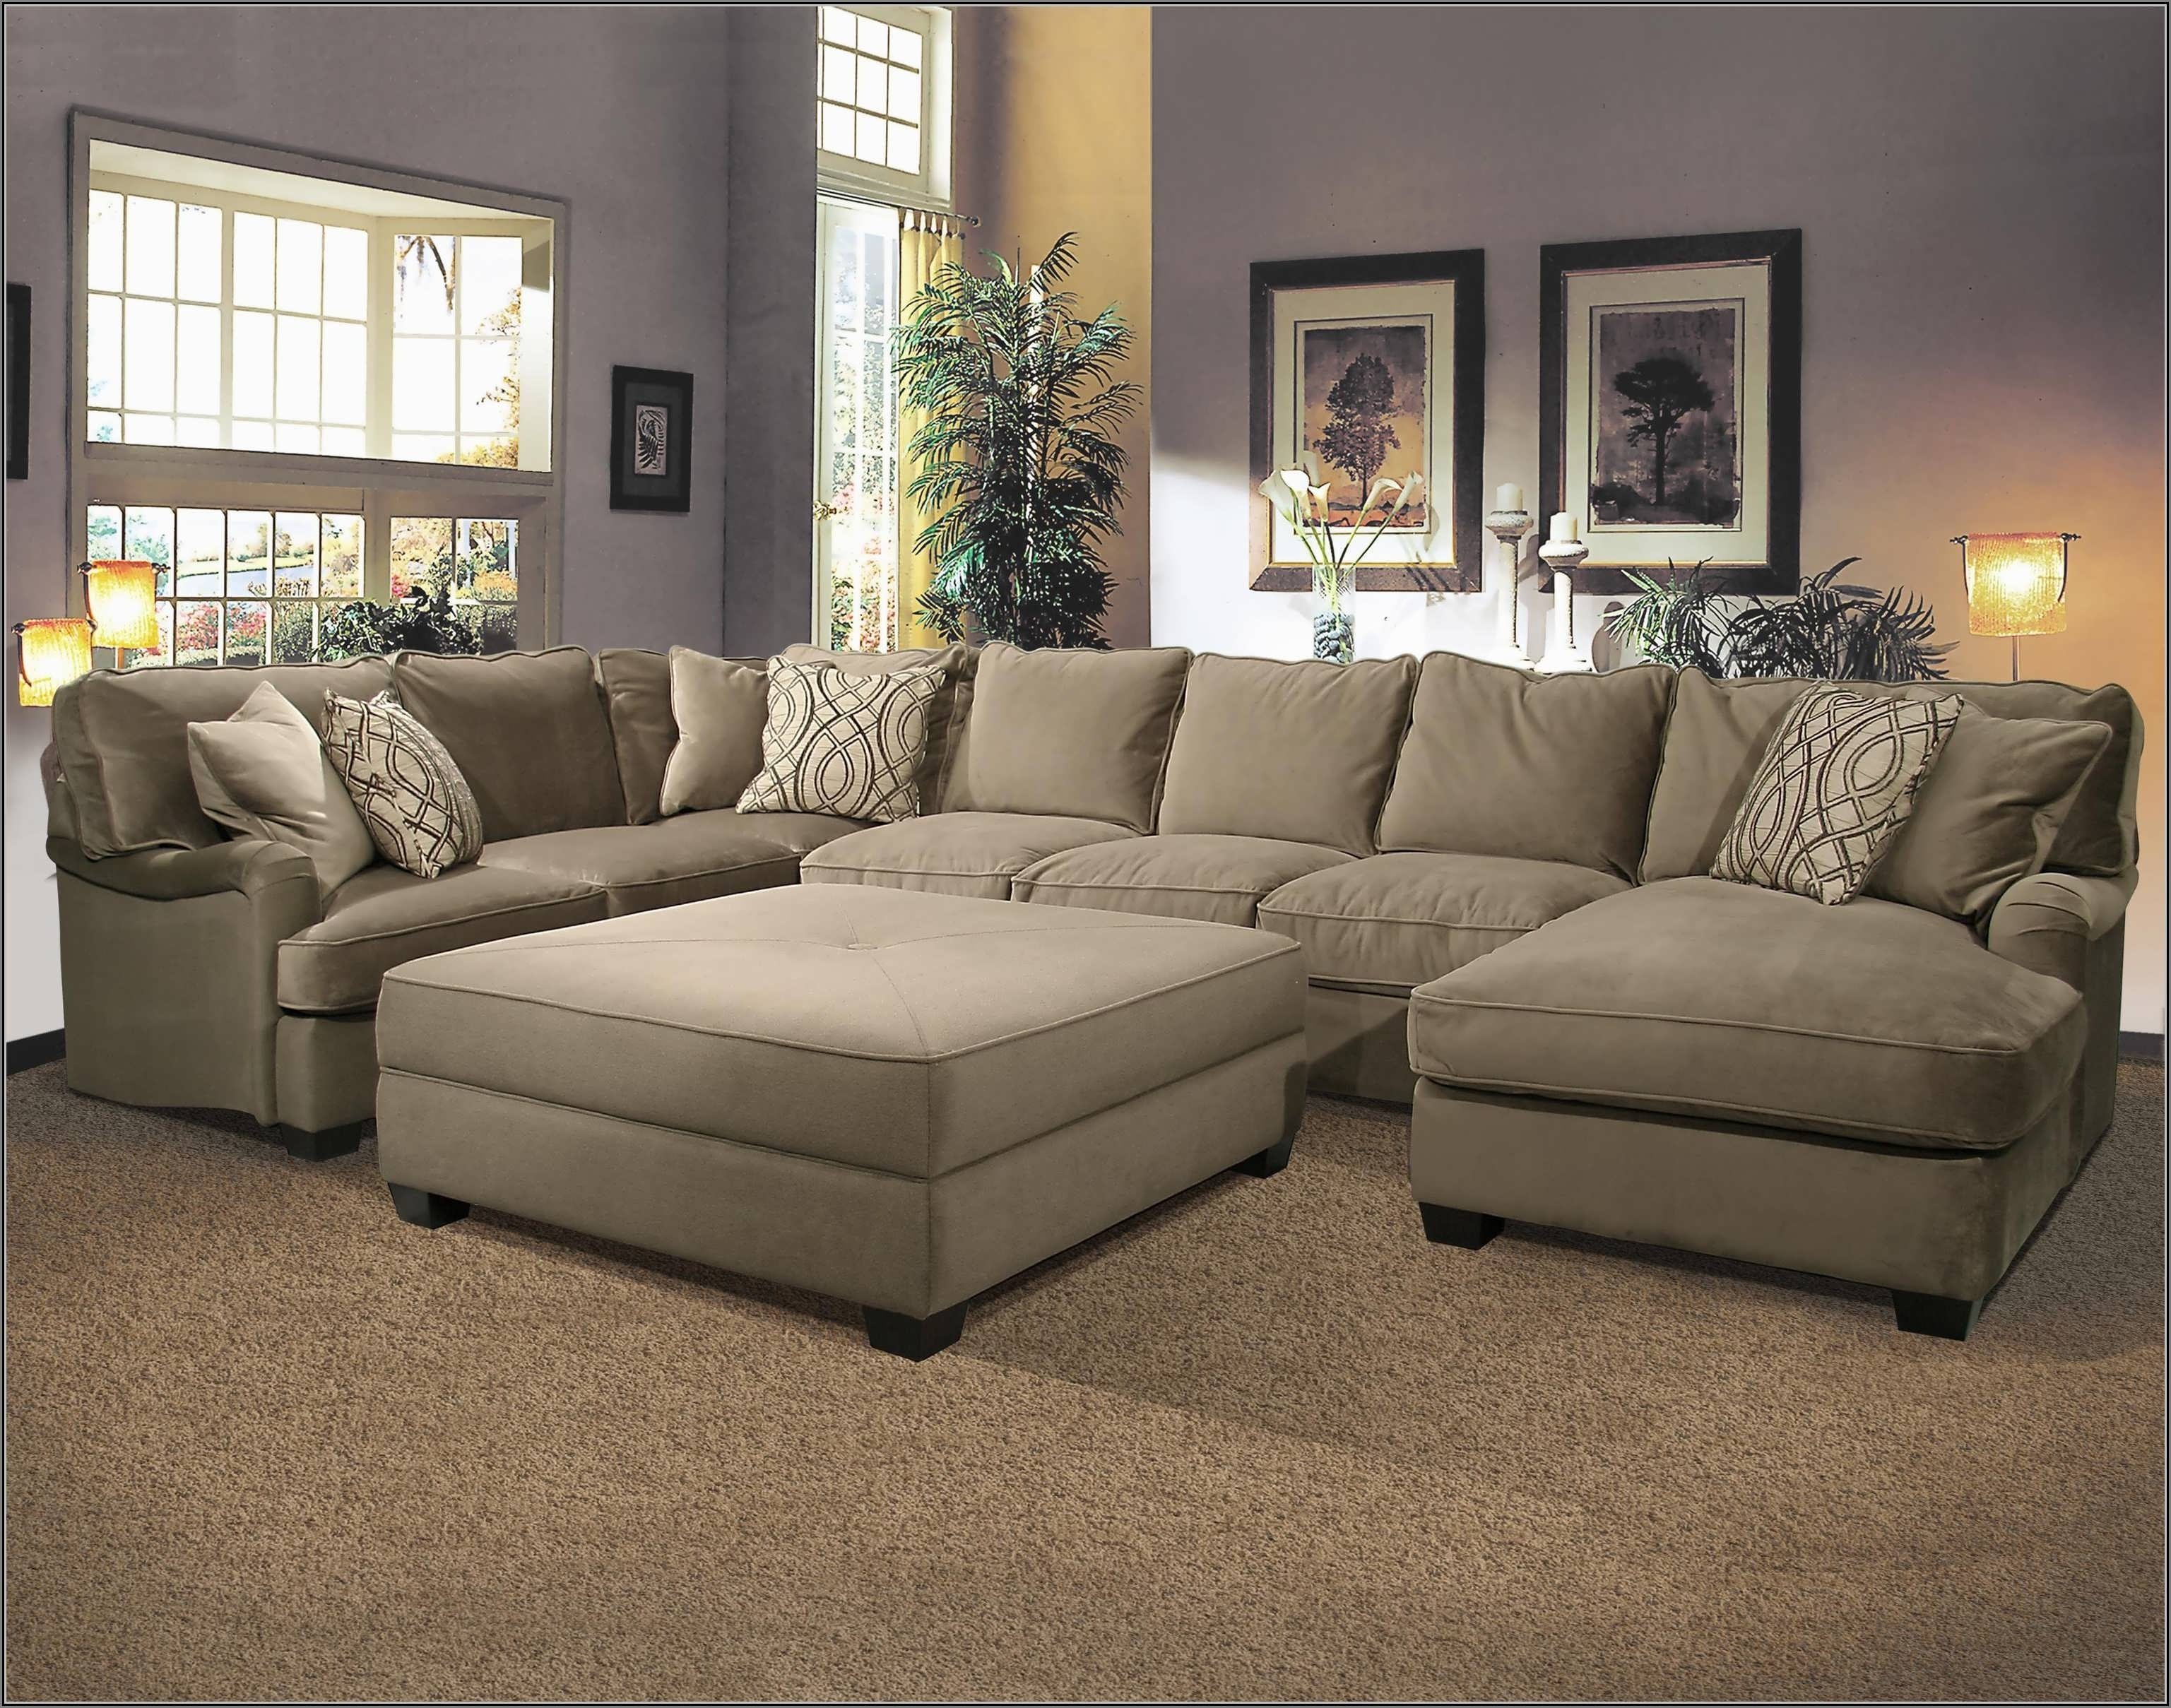 Livingroom : Marvellous Furniture Designs For Small Living Room Sofa Regarding Sectional Sofas In Philippines (Image 6 of 10)